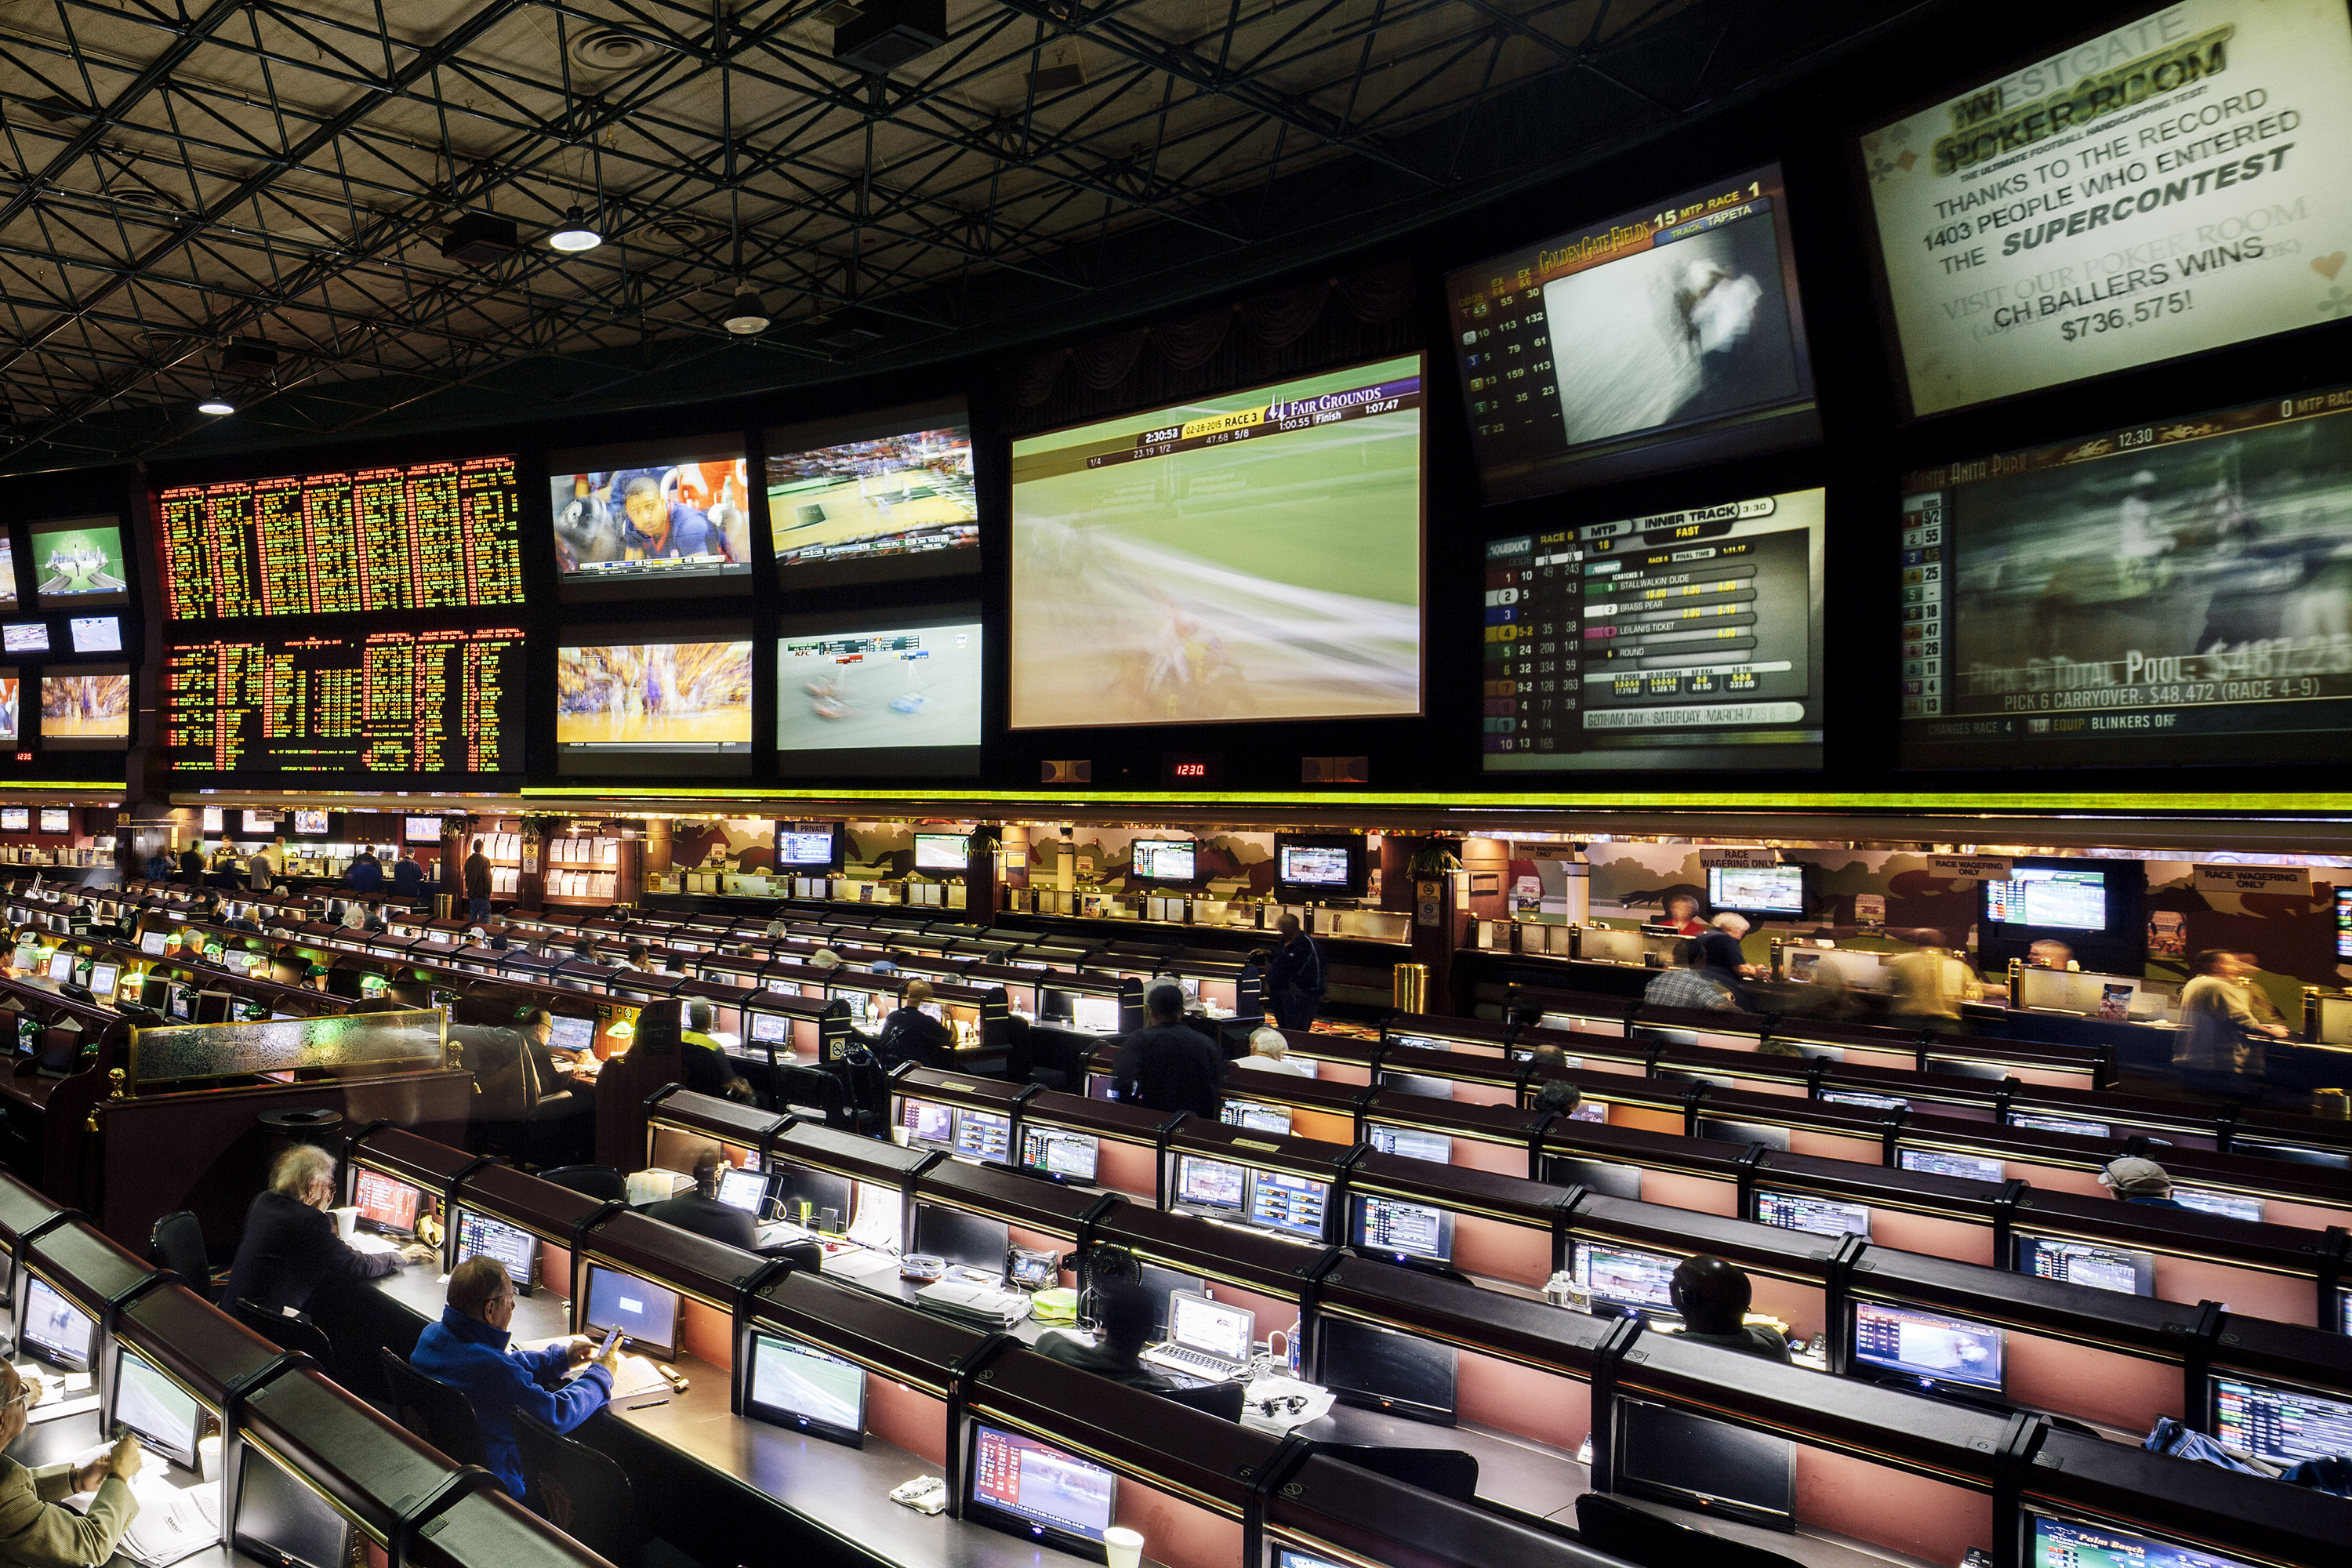 At over 30,000 sq. ft., Westgate Las Vegas SuperBook is the U.S.'s largest general sports-betting venue. With the high energy, being there is like watching a game in an arena.